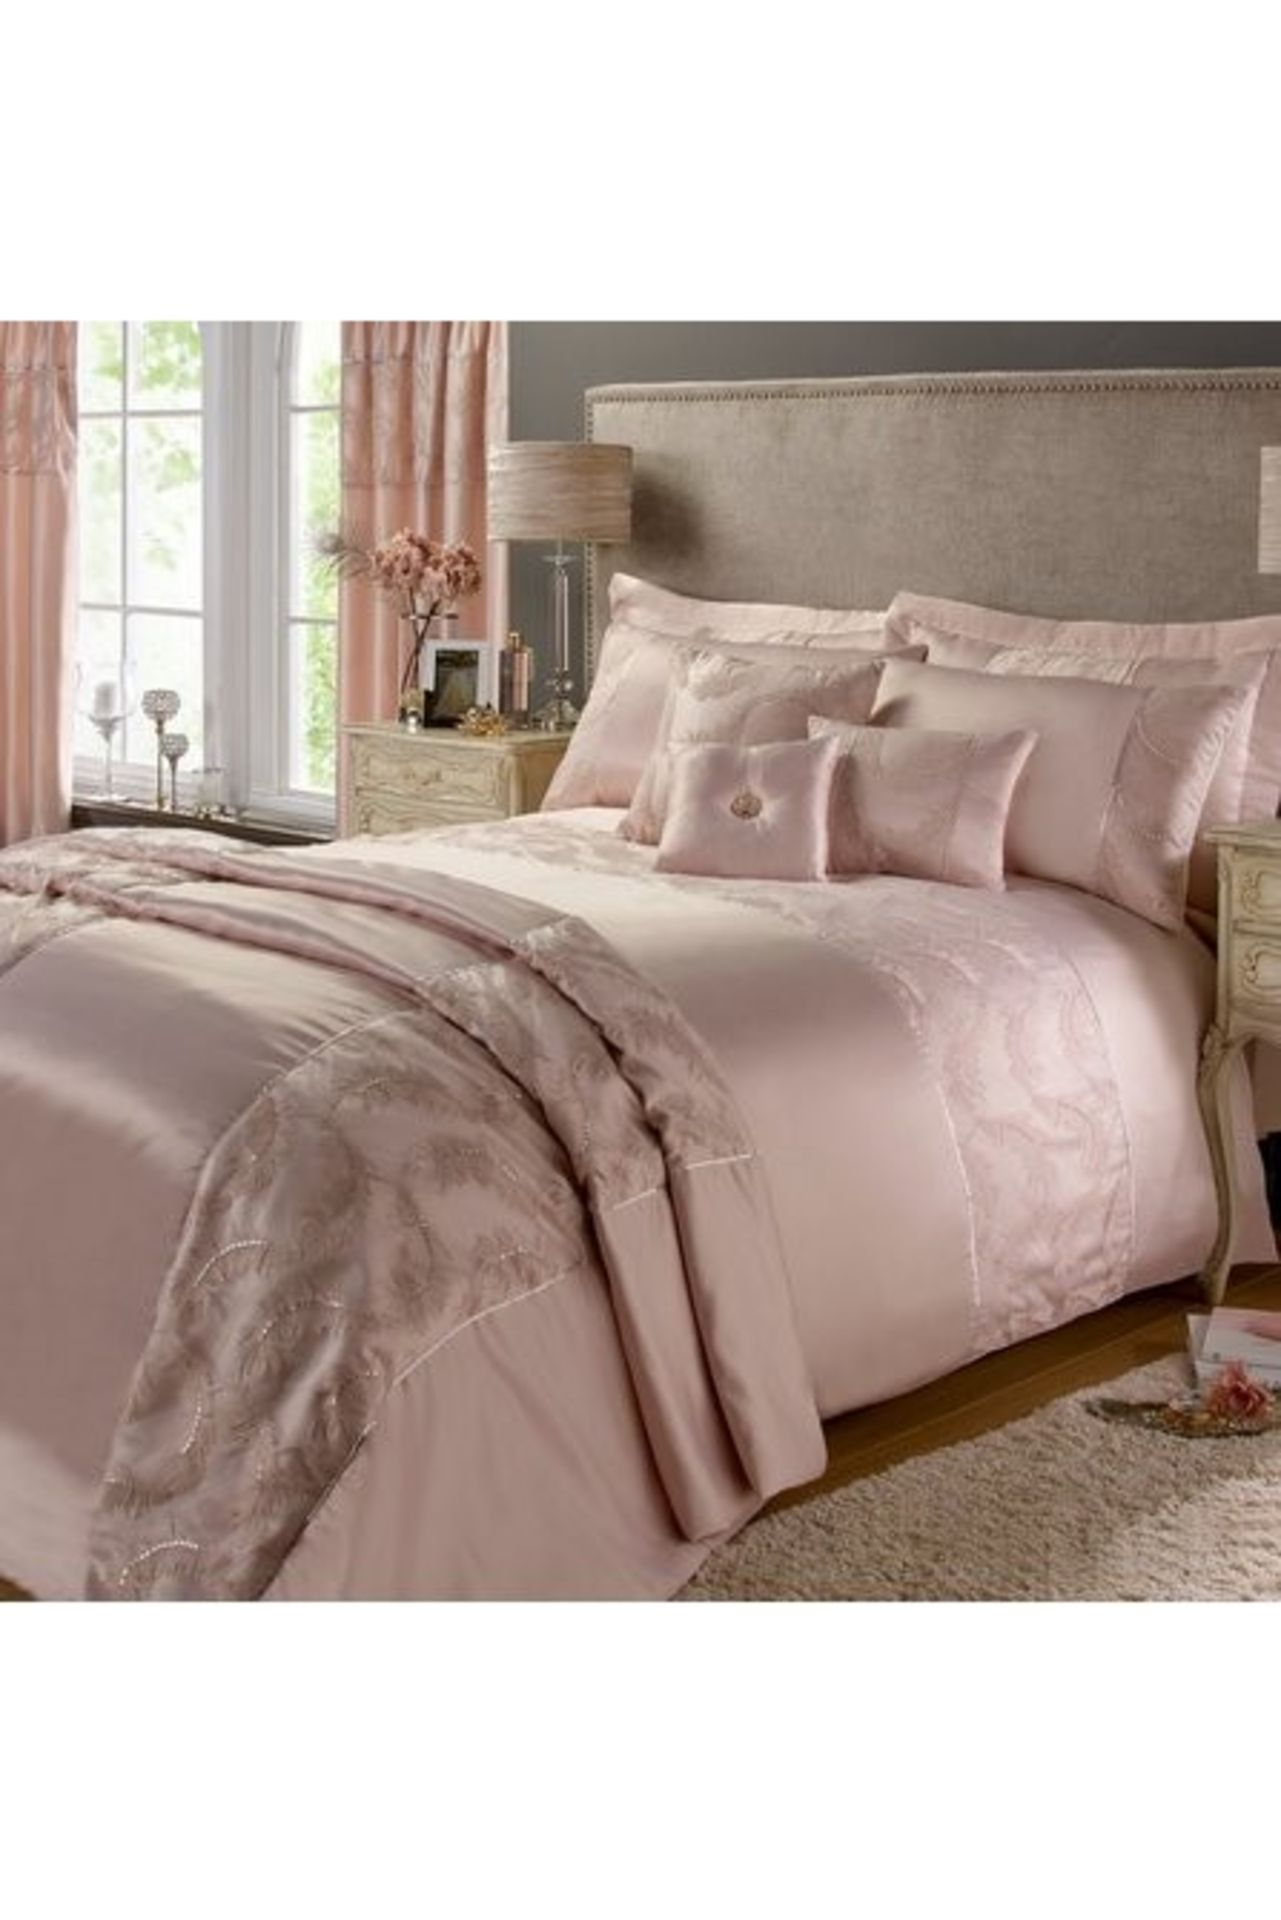 Lot 17 - 1 BAGGED METALLIC BUTTERFLY BEDSPREAD / RRP £74.99 (PUBLIC VIEWING AVAILABLE)